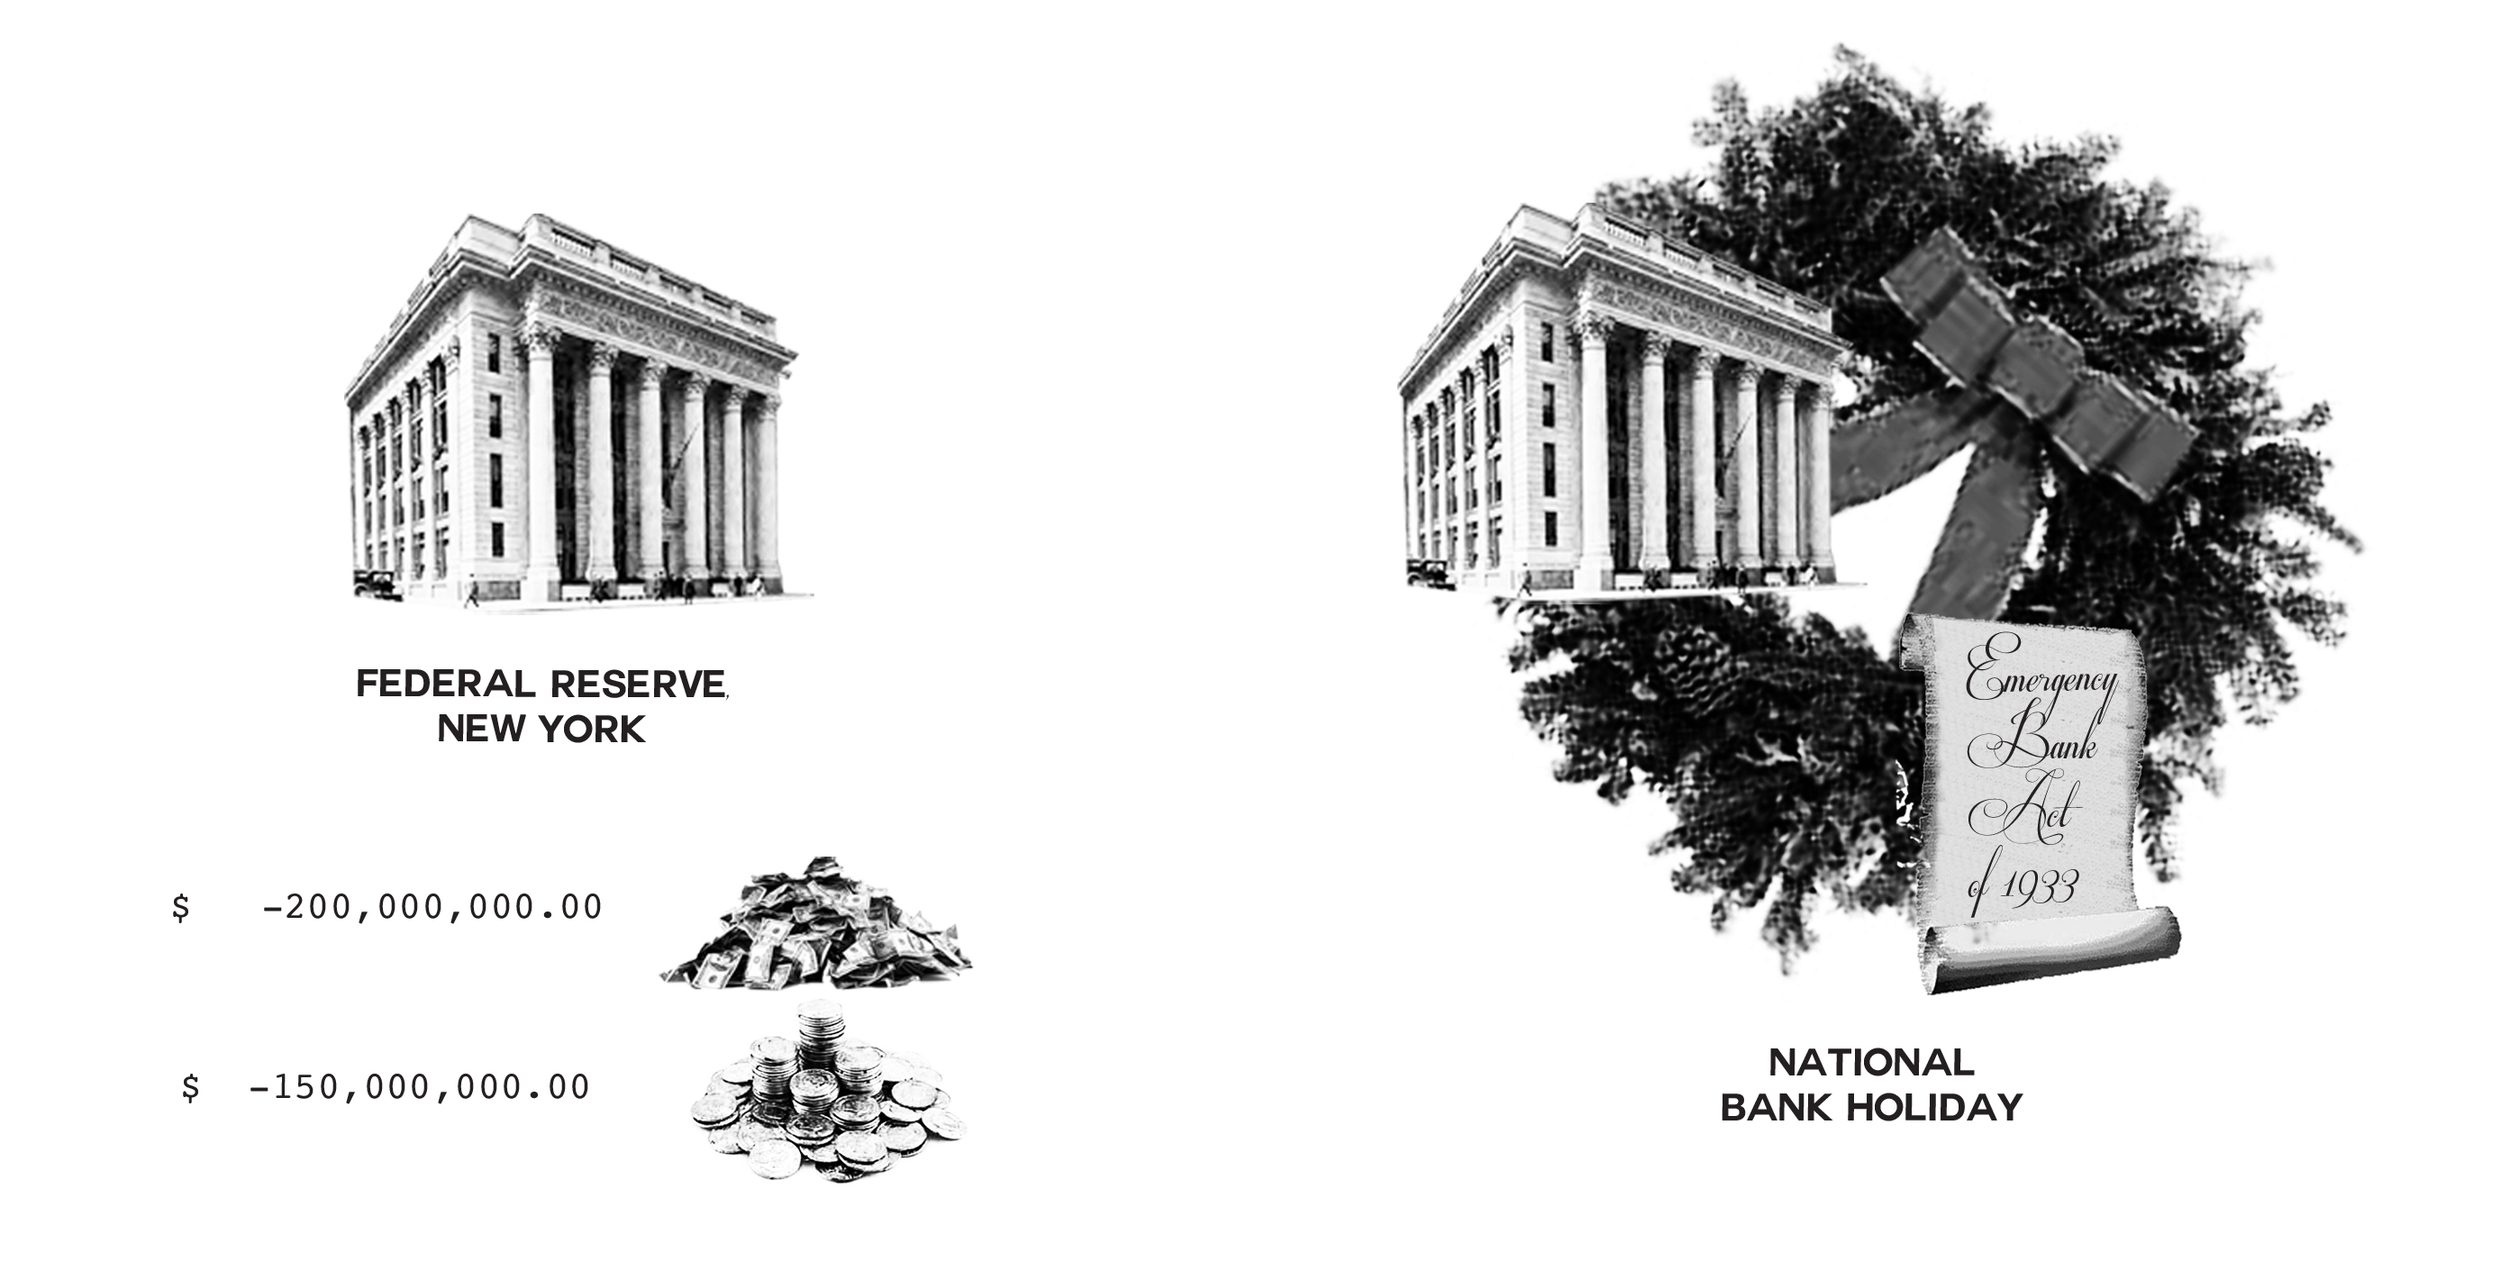 Act 3 Scene 1  Federal Reserve Bank of New York at the end of the Day lost over $200,000,000 in gold through wire transfers, gold earmarking, and exports and $150,000,000 in currency. Decided they needed drastic measure of calling National Bank Holiday. Drafting of the Emergency Banking Act of 1933.